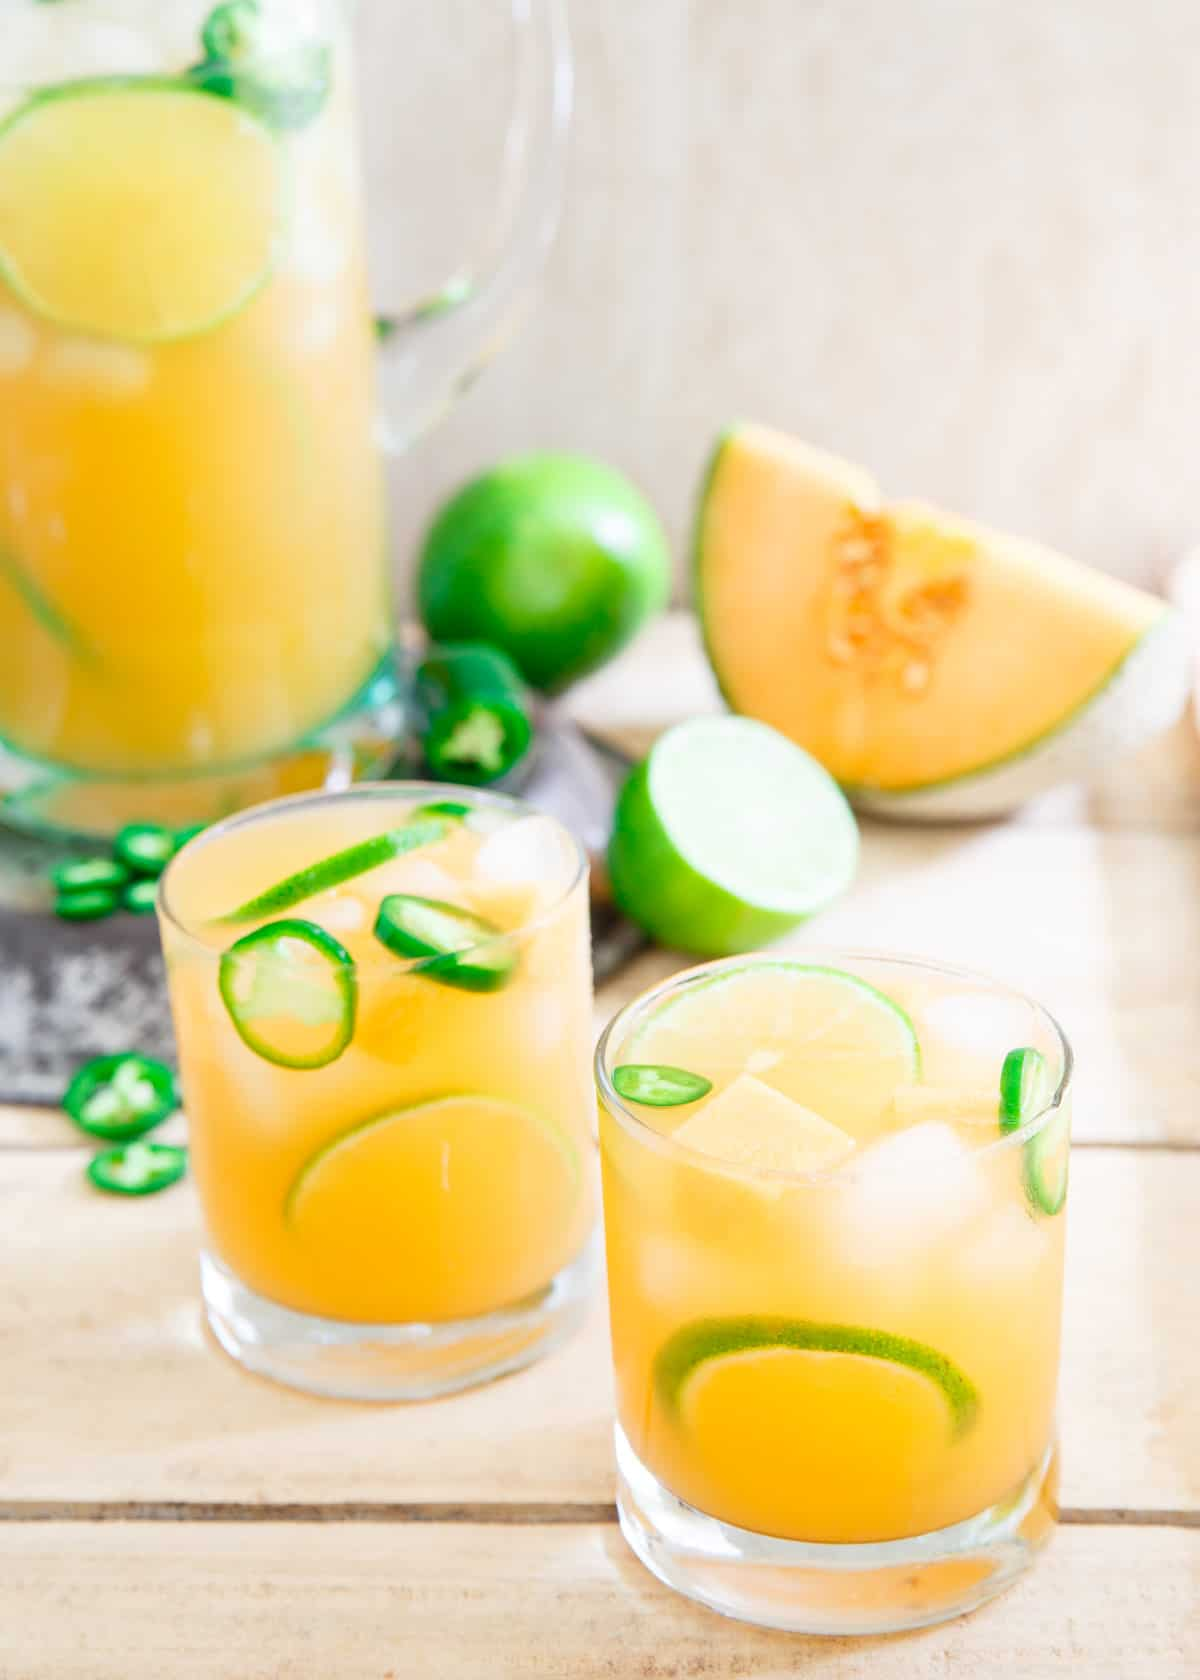 Refreshing, slightly sweet, subtly spicy and a bit tart, this cantaloupe lime jalapeño aqua fresca is the perfect summer drink.